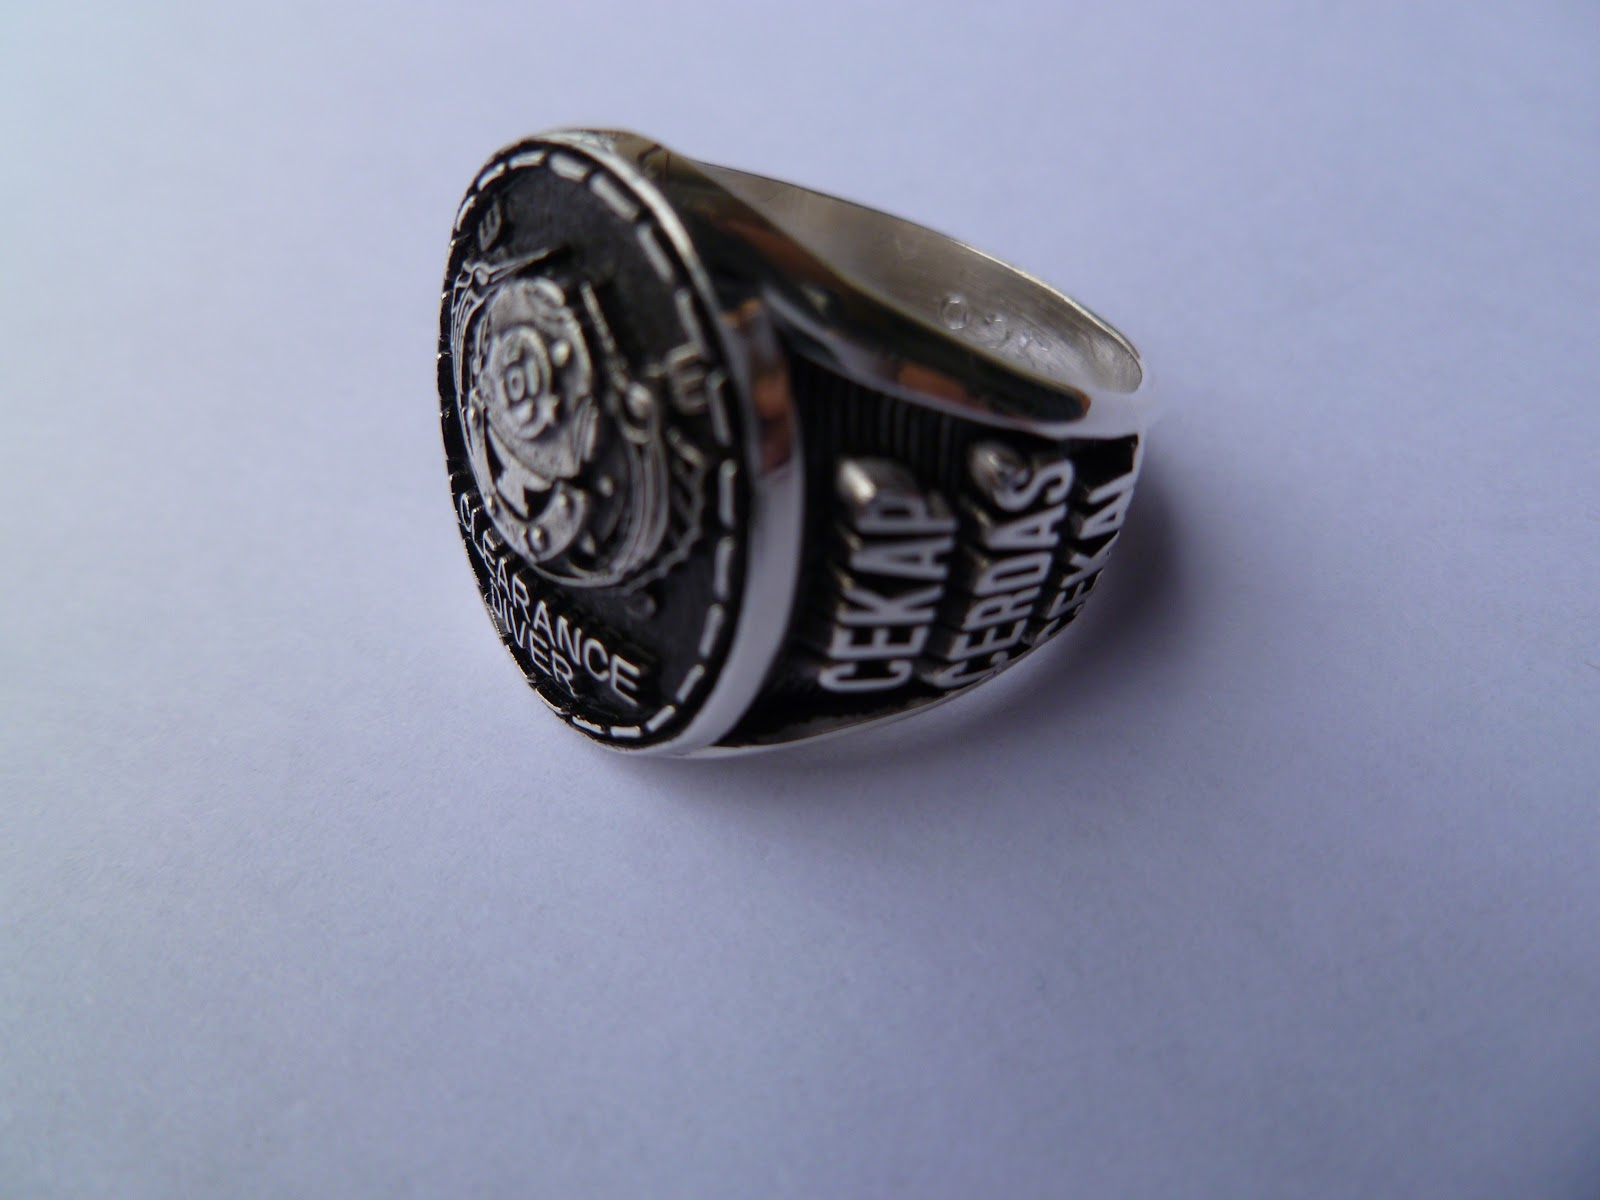 and p gold globe doc usmc eagle anchor marine navy corpsman ring with tone two corps jewelry rings